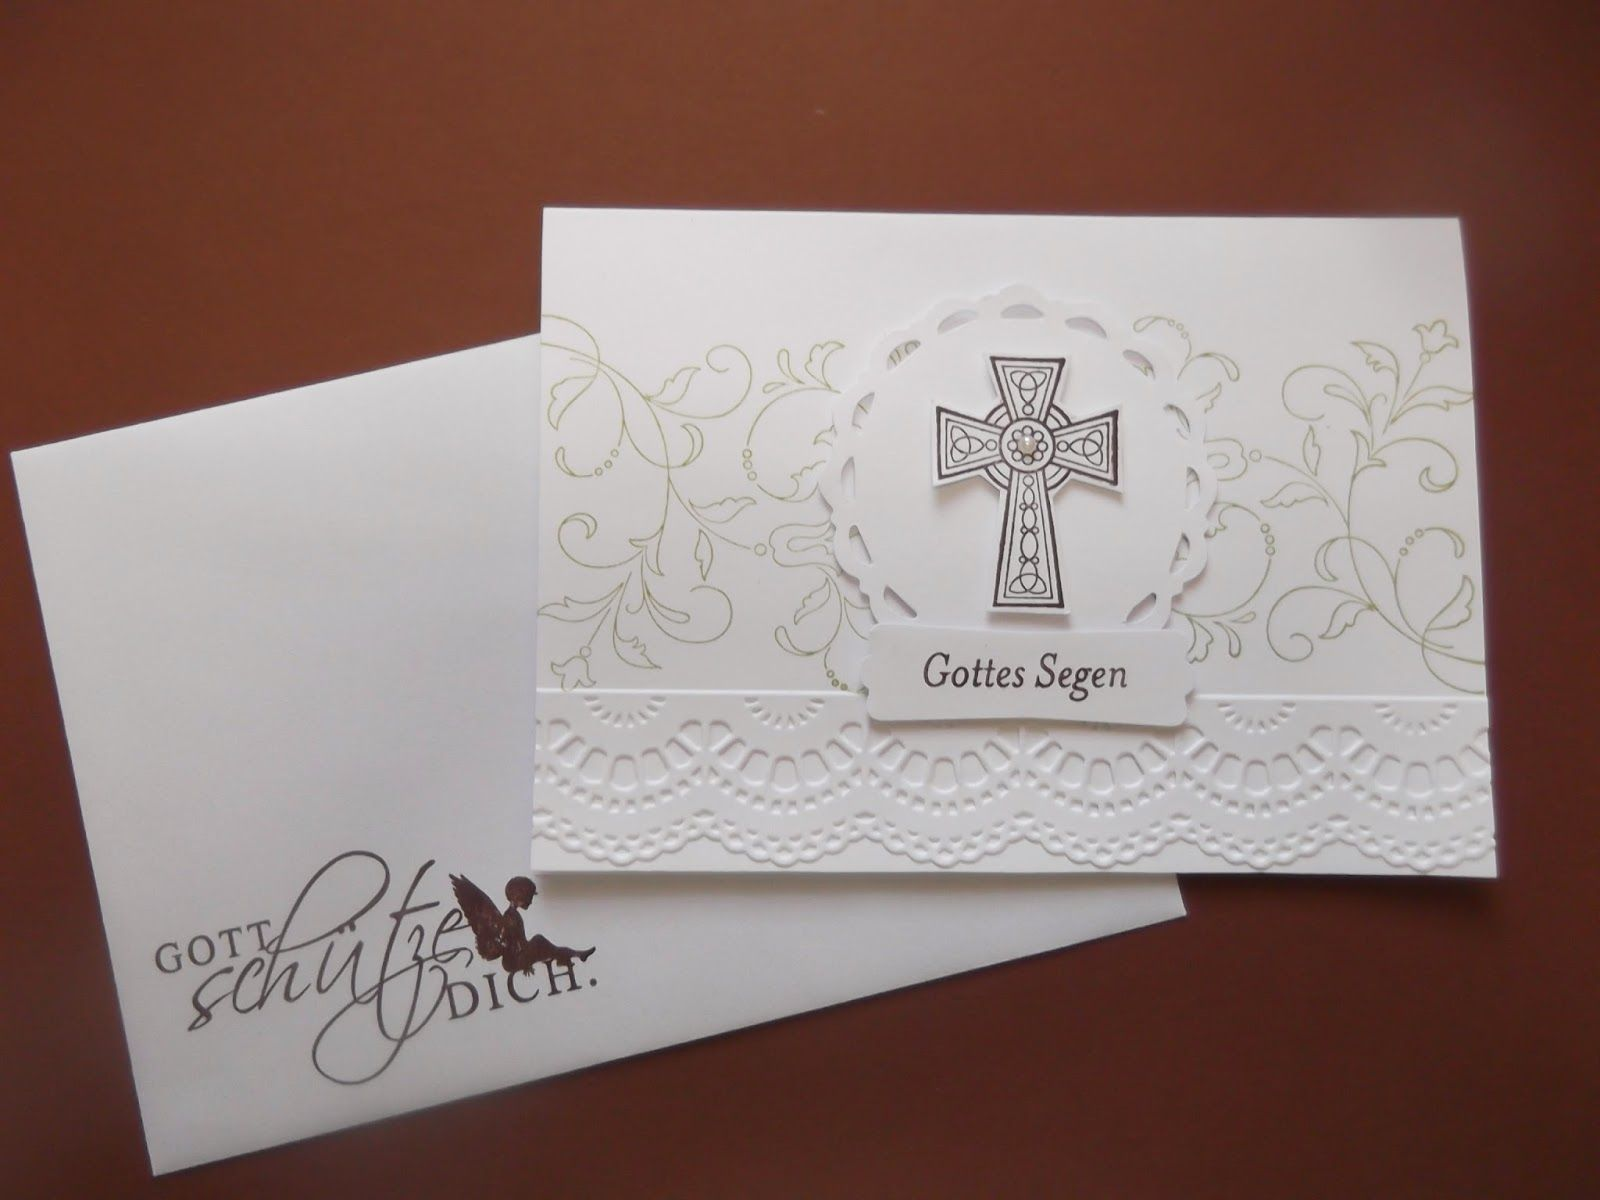 Sconebeker Stempelscheune - Stampin up Sets : Kreative Elemente, Crosses of Hope, Segenswünsche